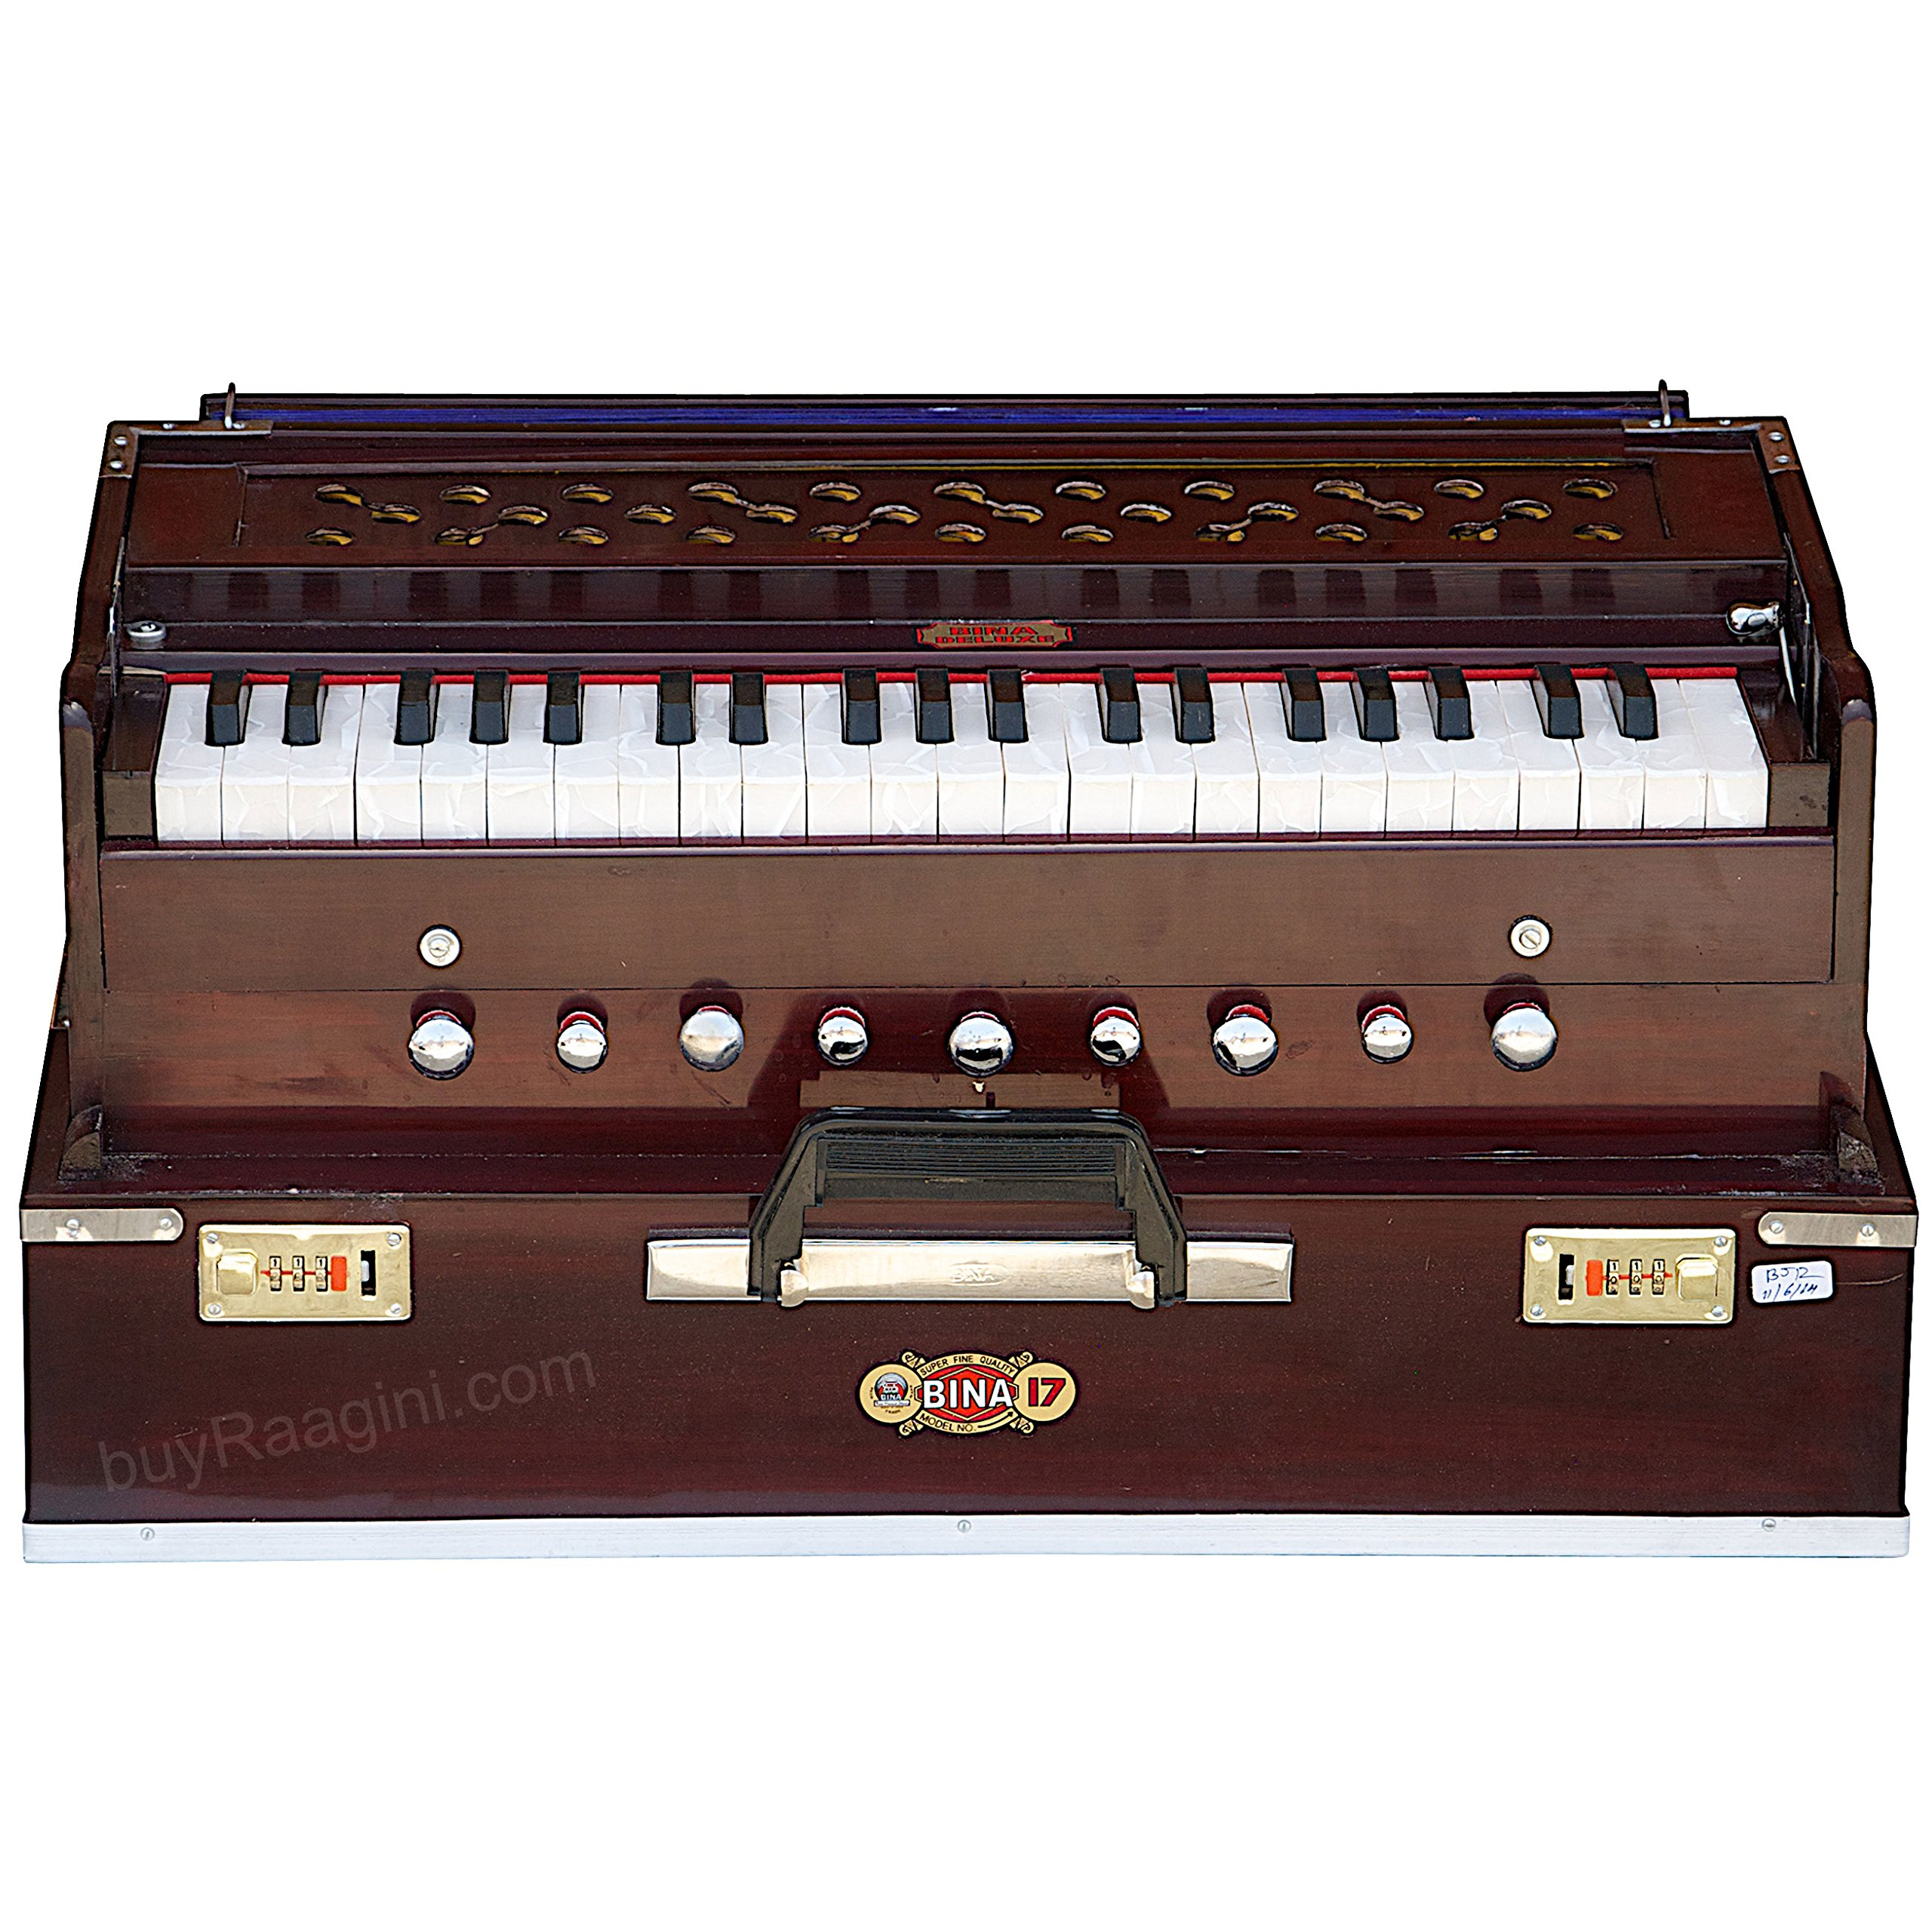 Harmonium BINA No. 17 Delux, In USA, Folding, Special Double Reed, Safri, Kirtan, 9 Stops, Rosewood Color, Coupler, Comes with Book and Nylon Bag (PDI-AGG) by Bina